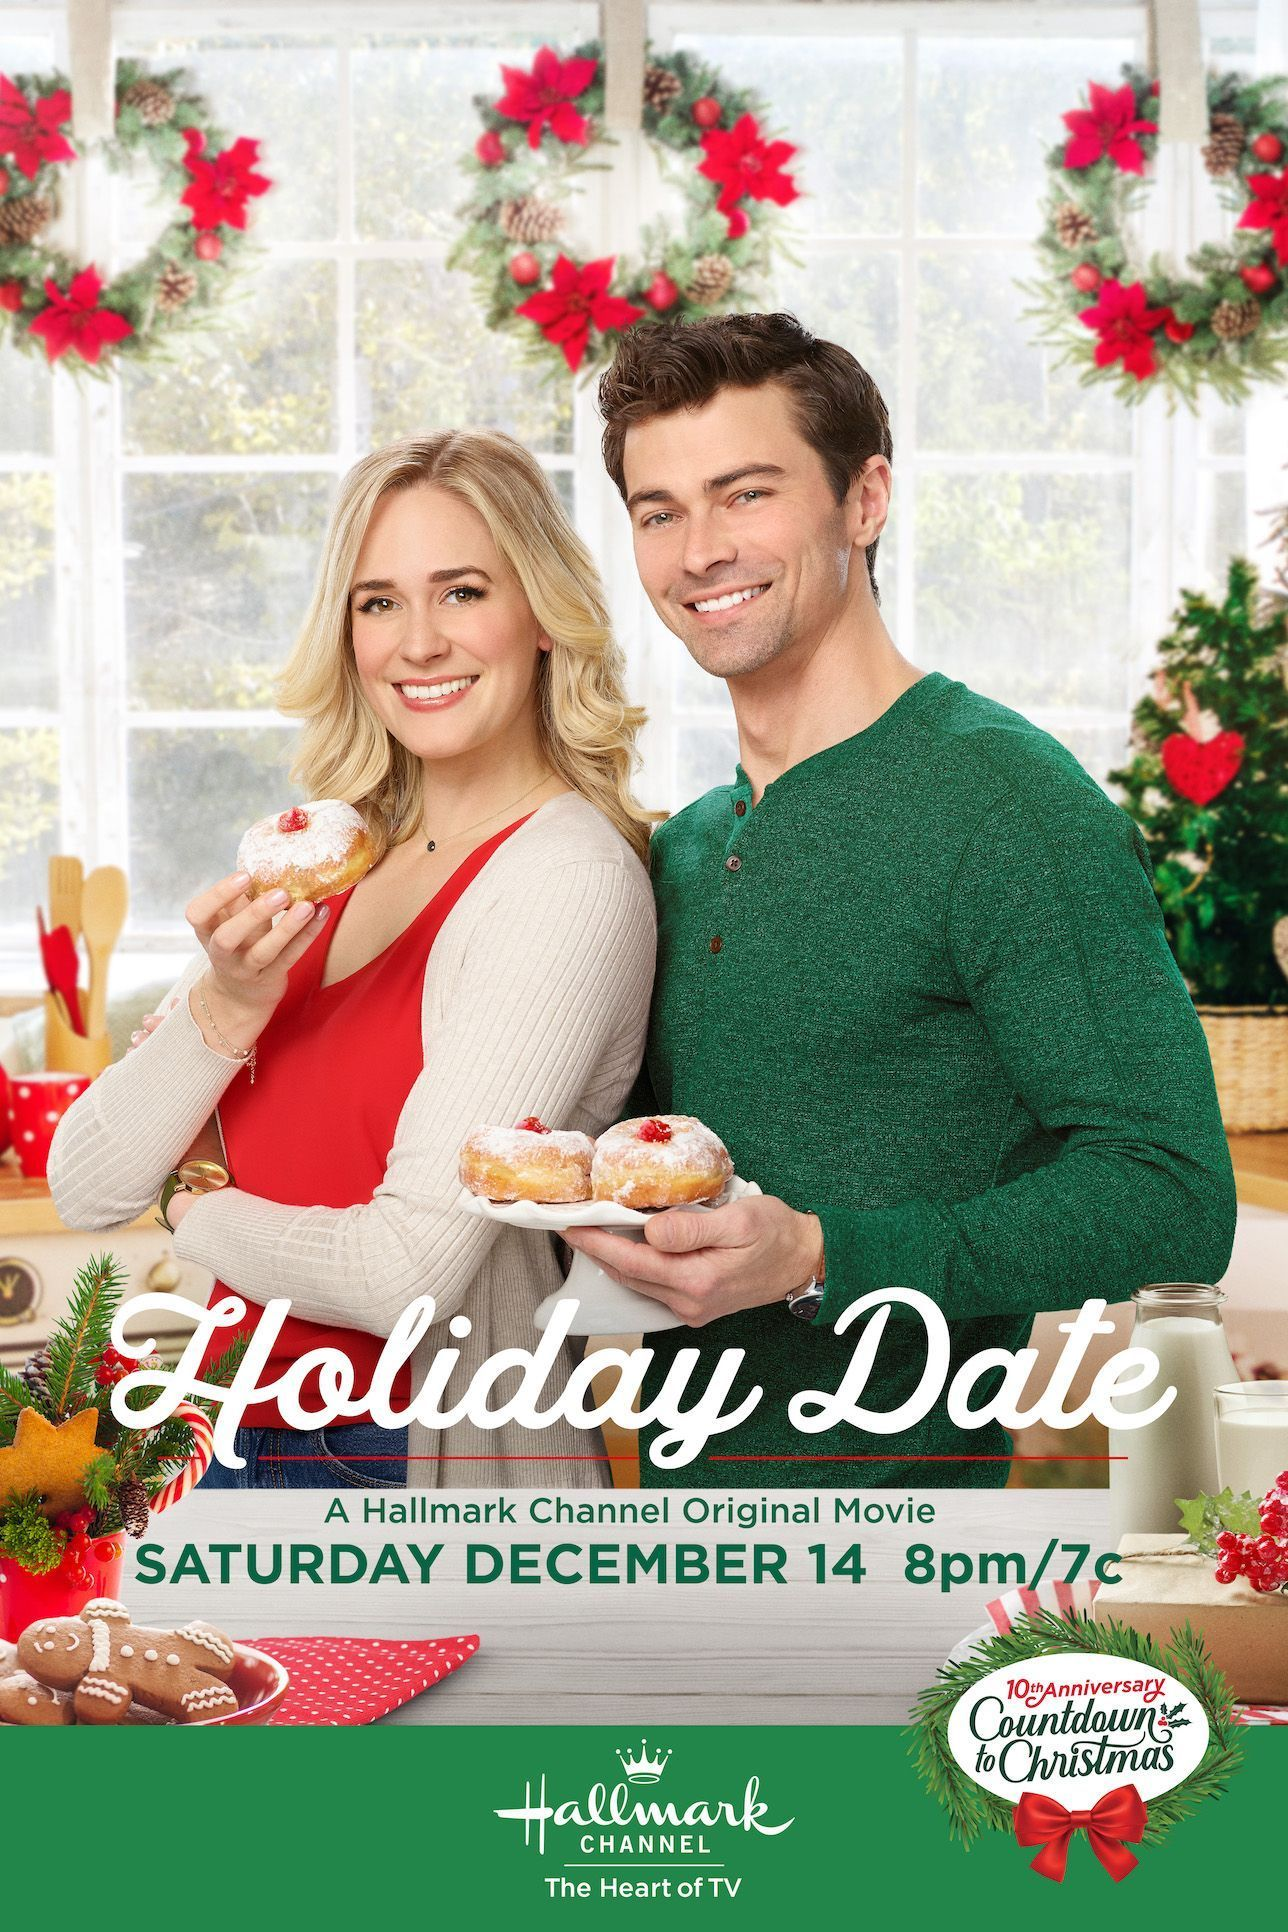 Christmas And Hanukkah Are Honored Together In Holiday Date Starring Brit Hallmark Christmas Movies Hallmark Channel Christmas Movies Hallmark Movies Romance